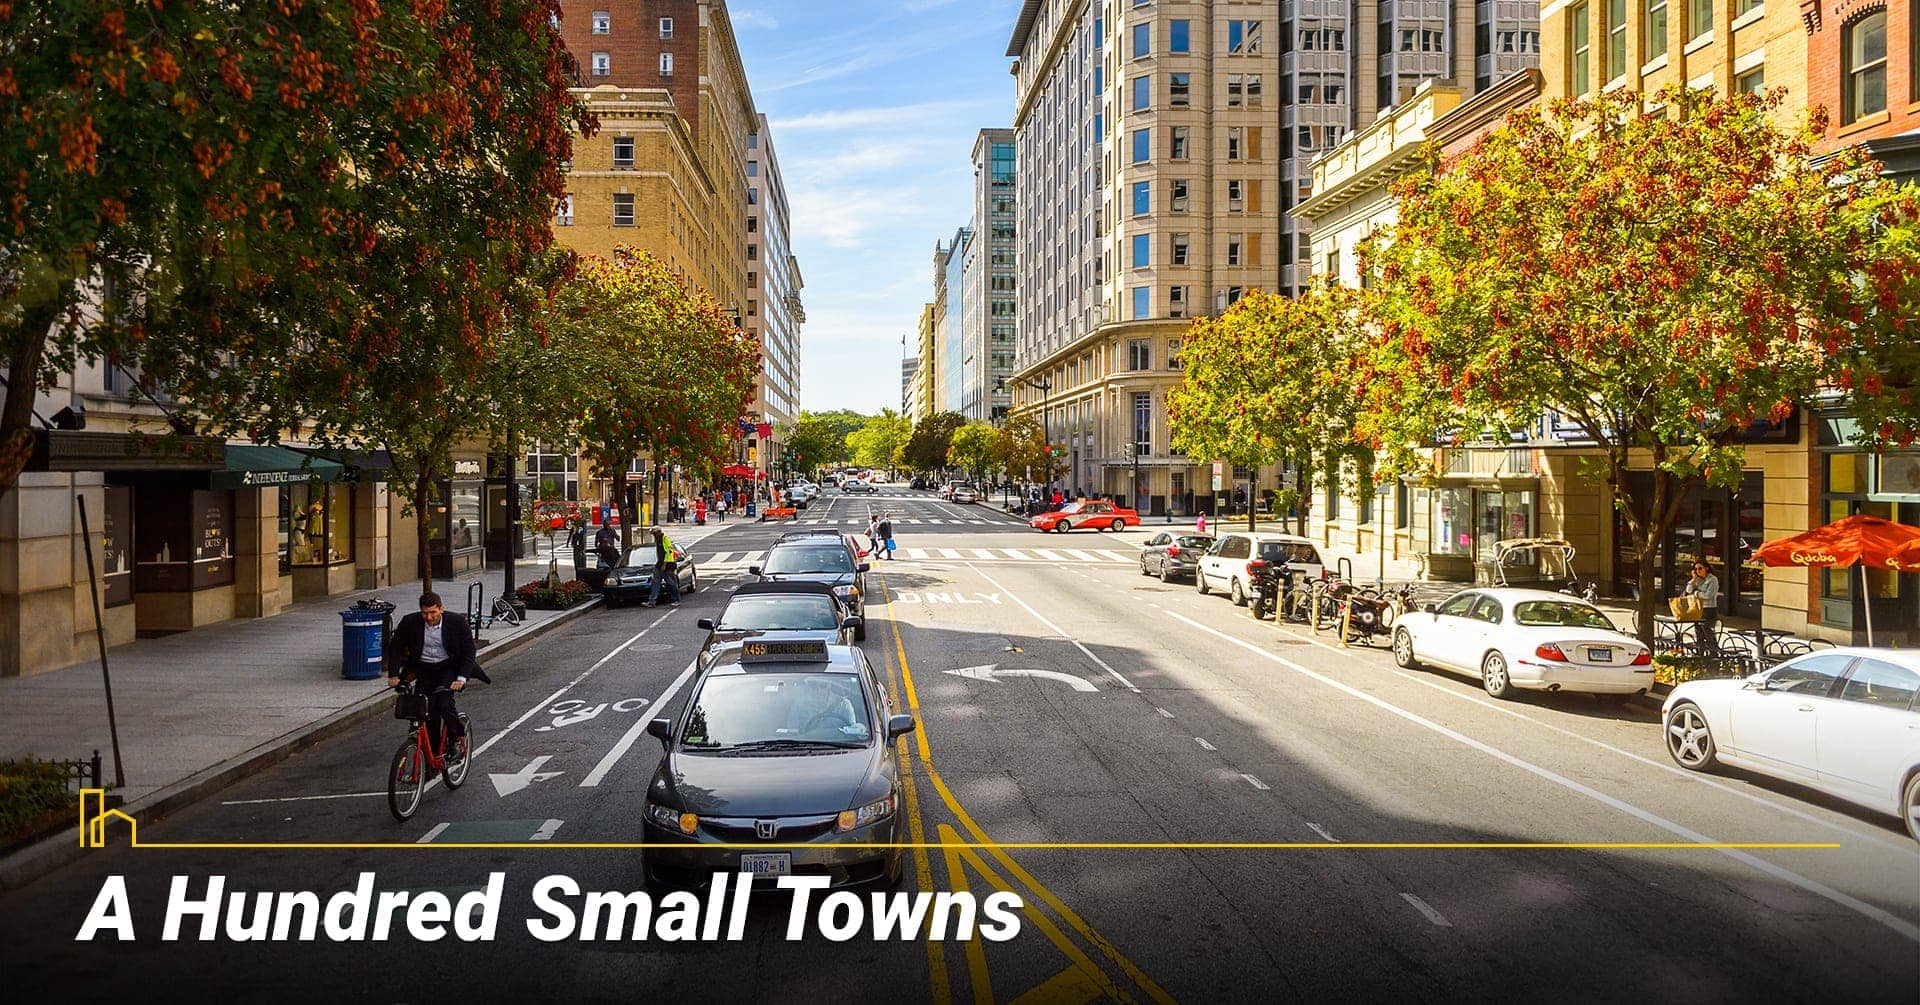 A Hundred Small Towns in Washington, DC